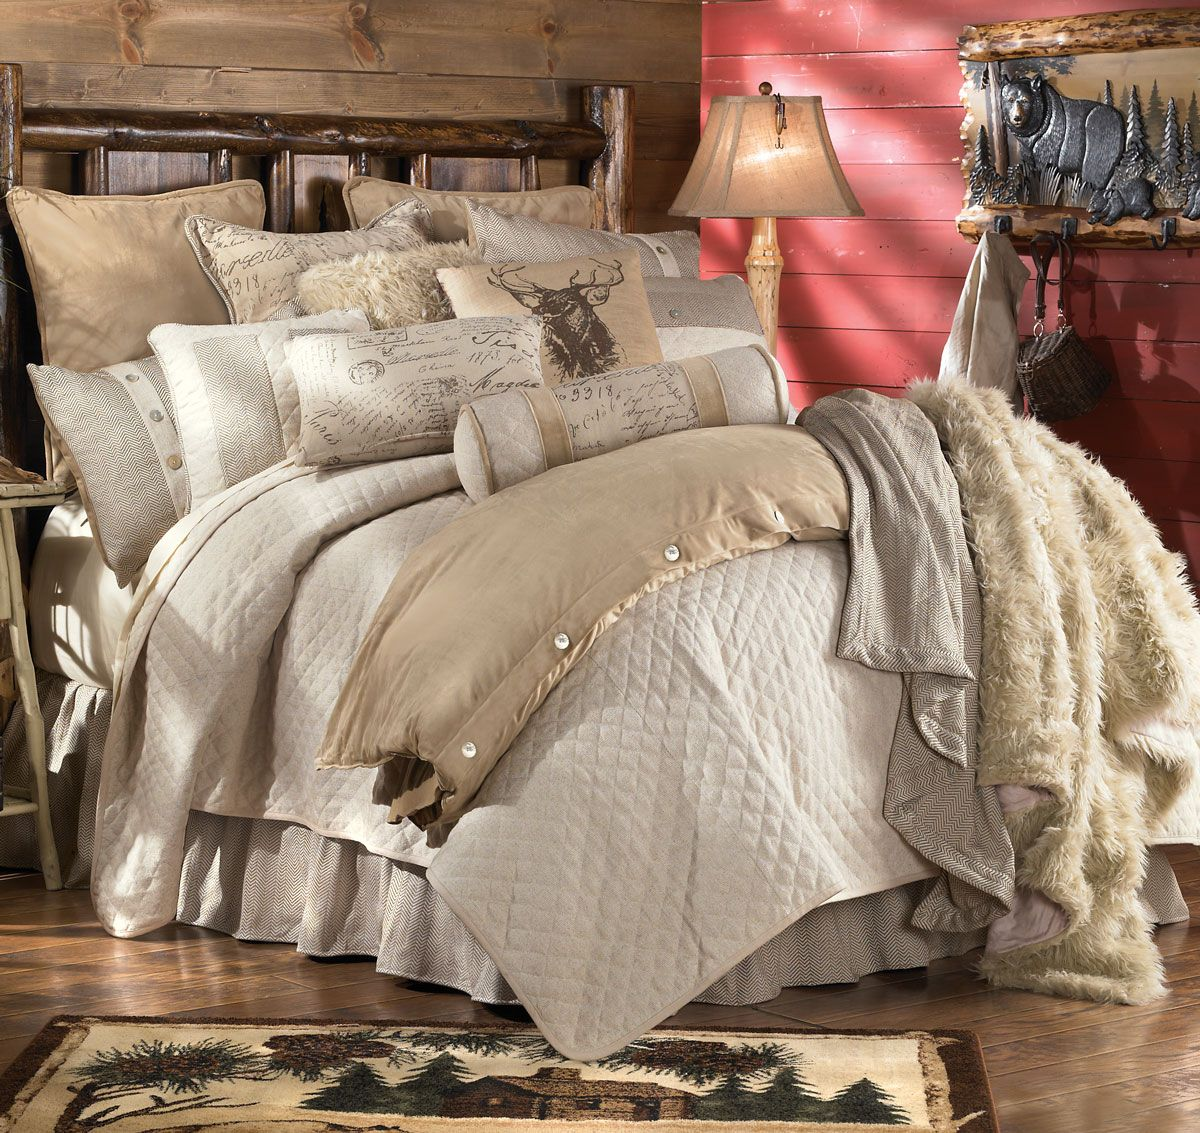 Fairfield Bed Set Queen For the Home Pinterest Bed sets